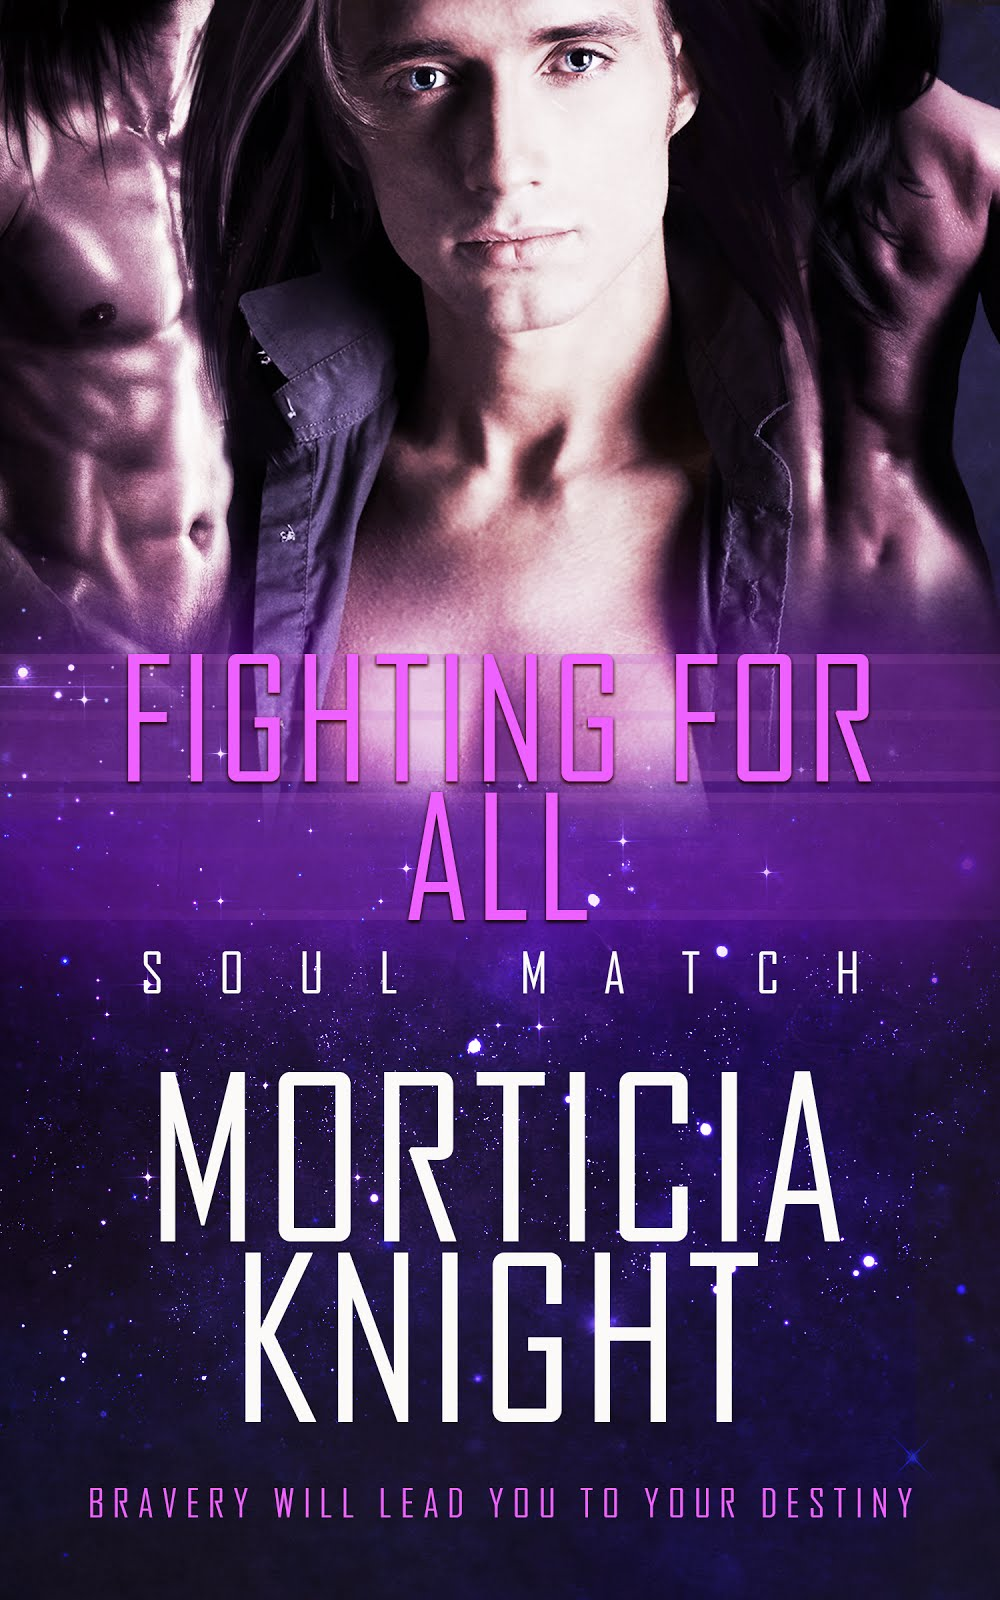 Fighting For All by Morticia Knight